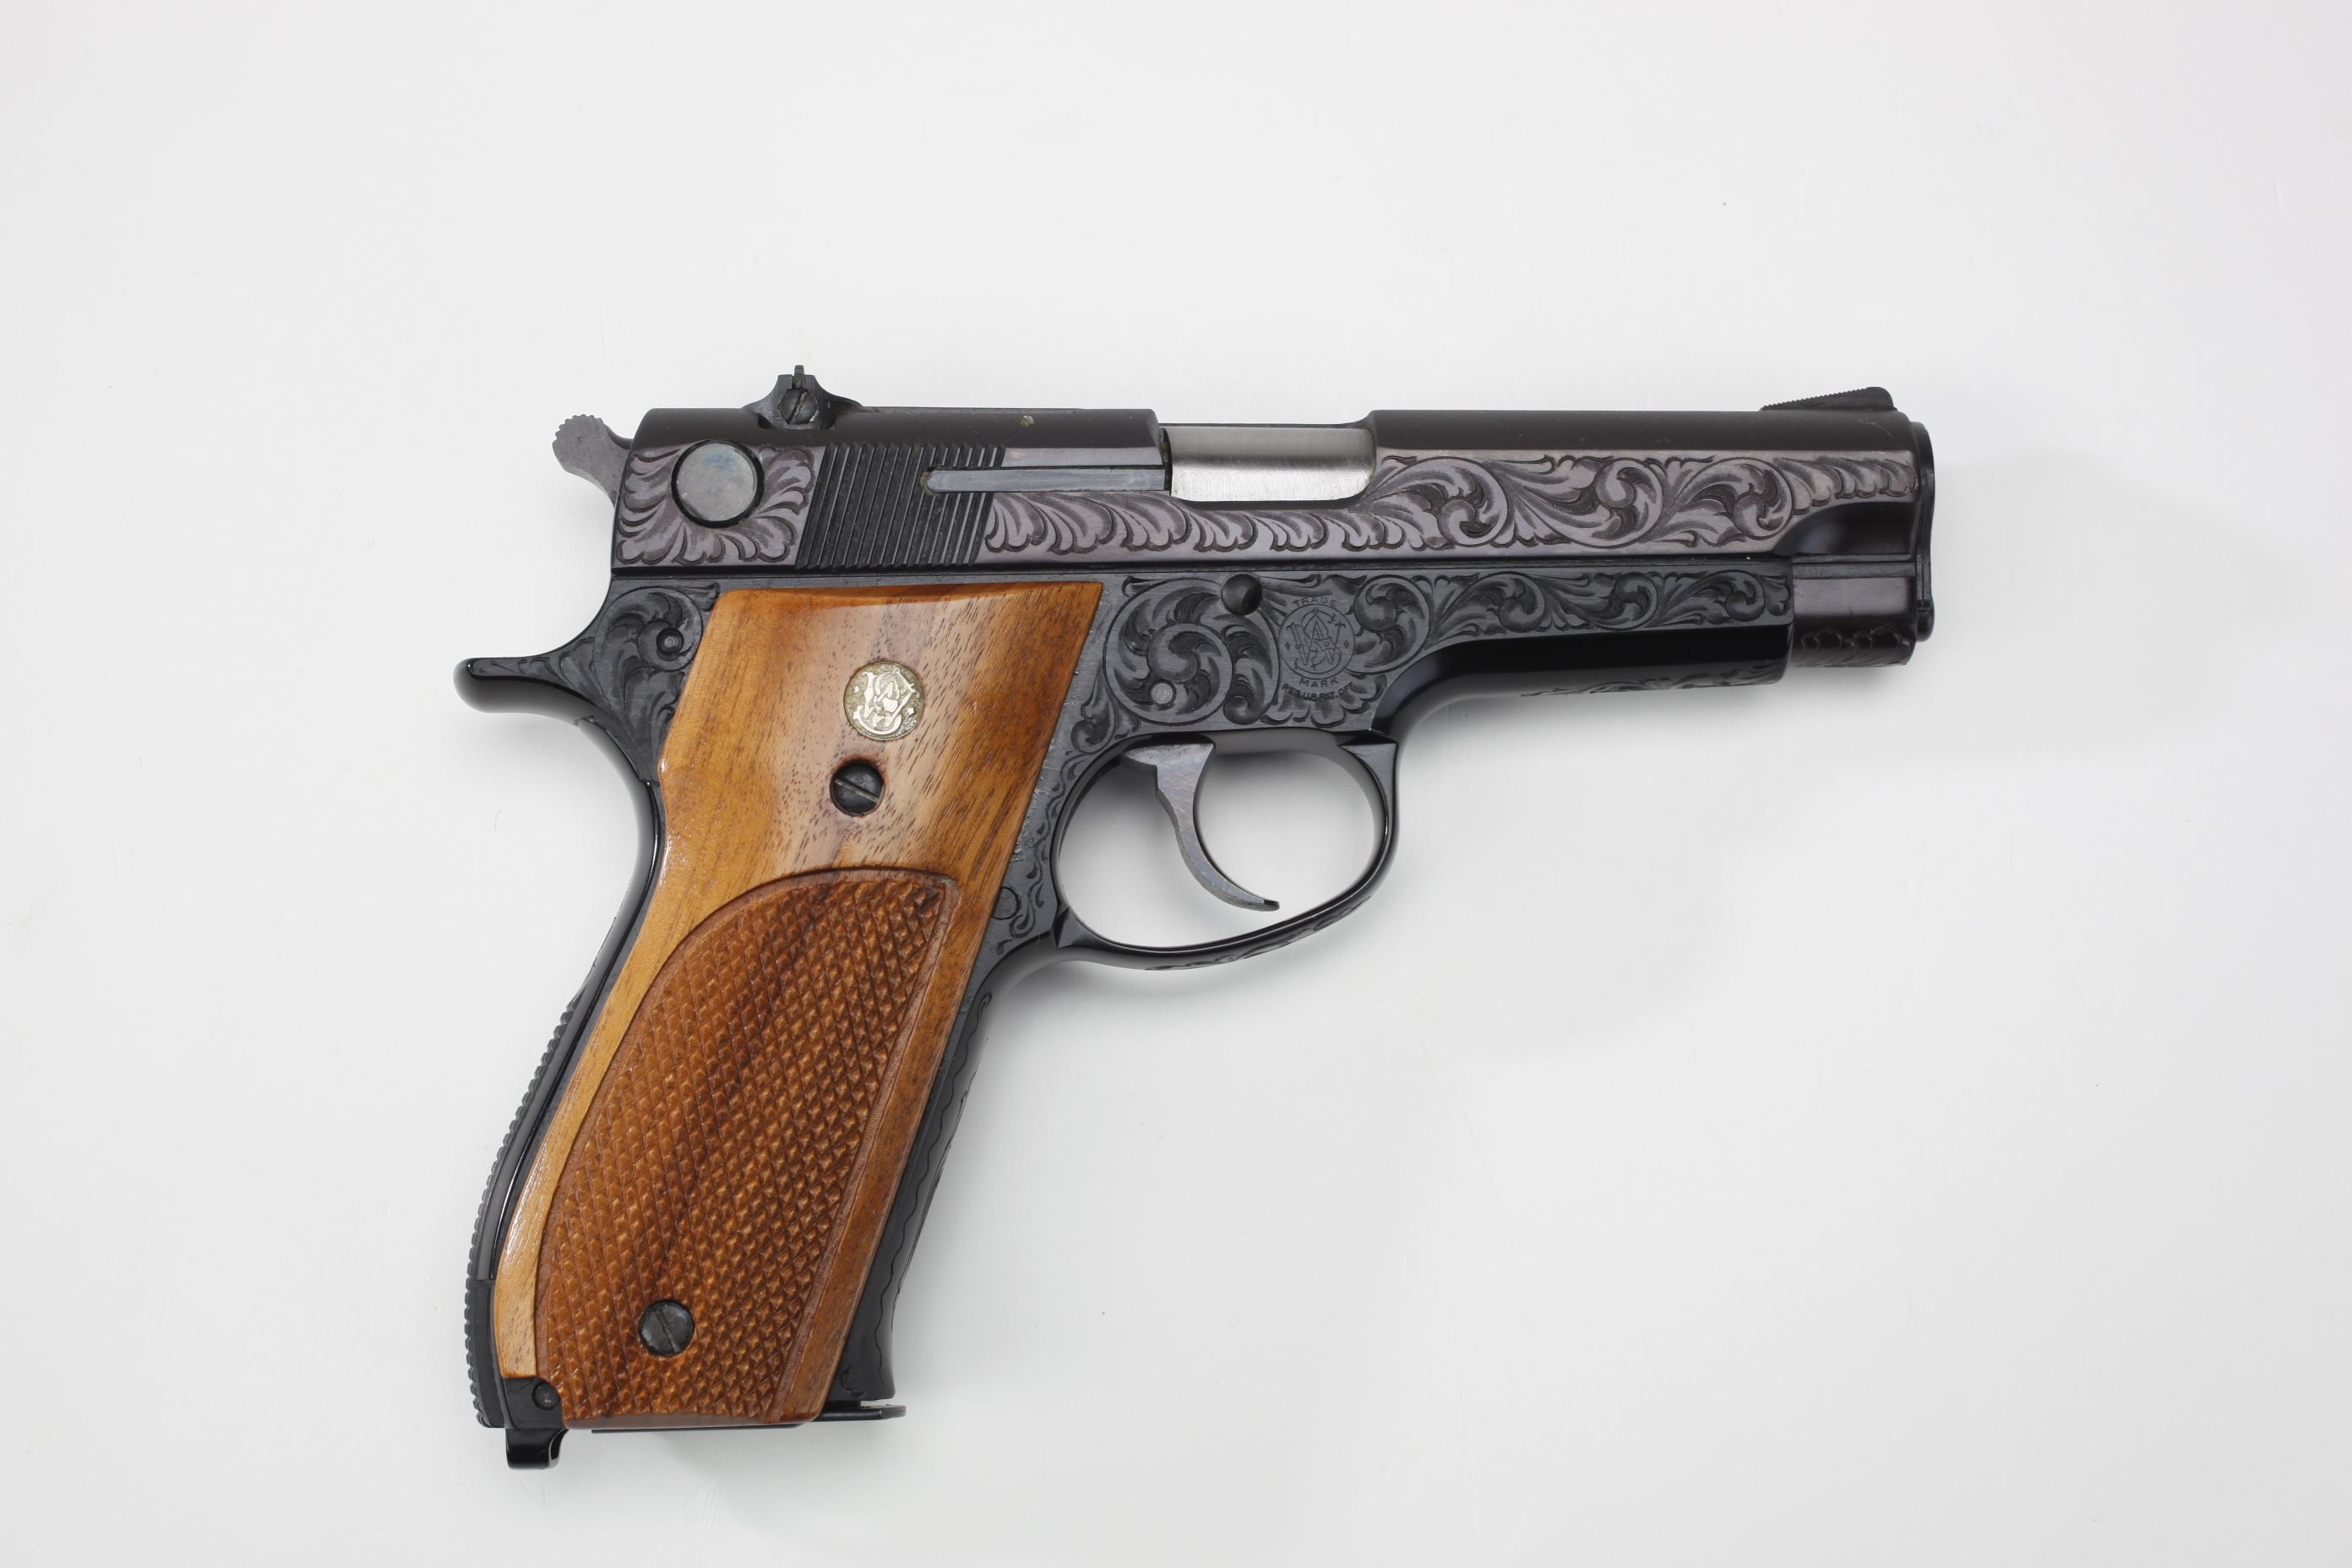 Smith & Wesson (Springfield, MA) Model 39 Semi-Automatic Pistol